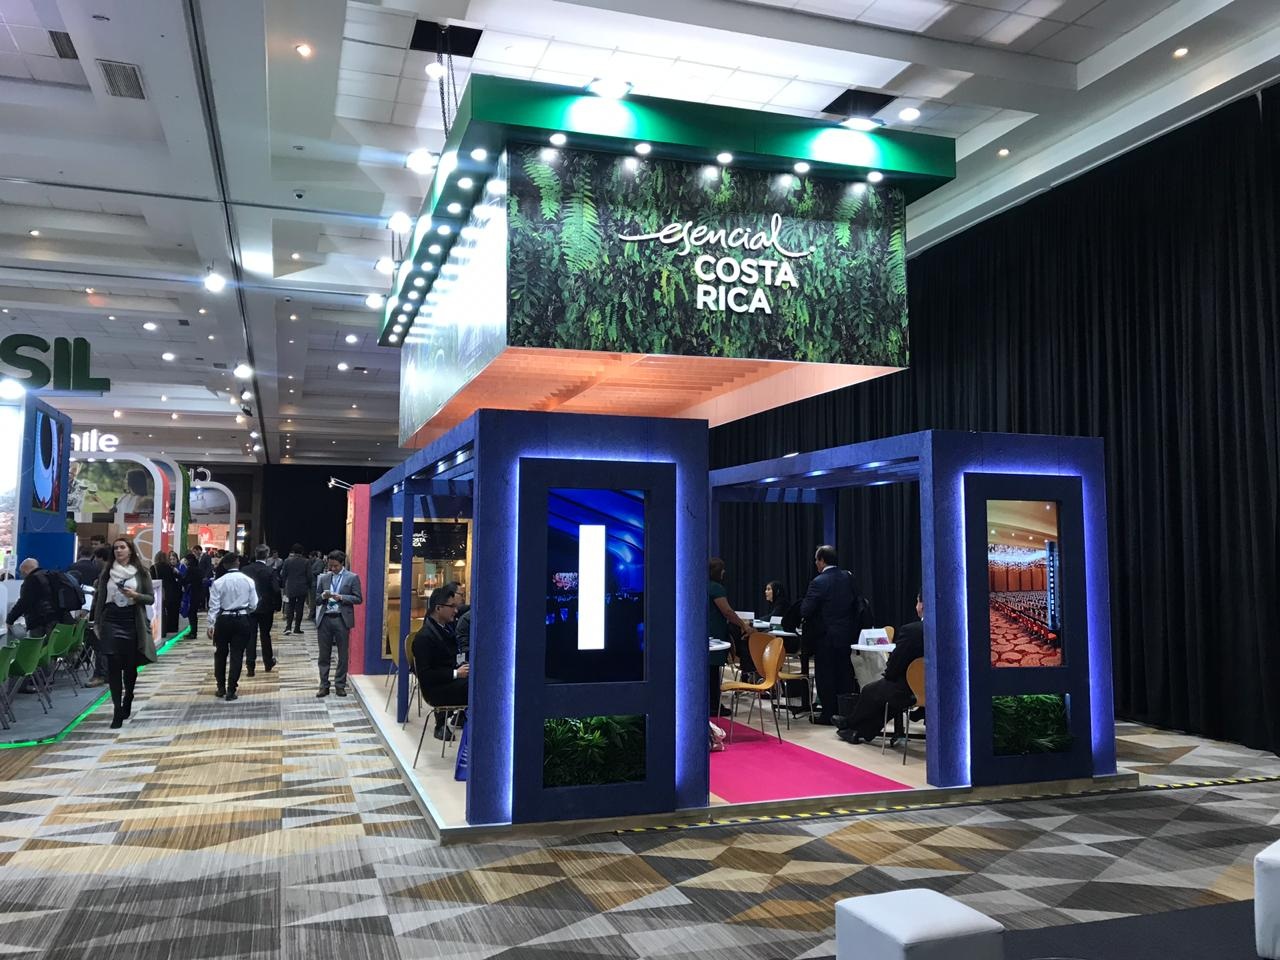 Costa Rica ratified its positioning at the 2019 FIEXPO business tourism segment